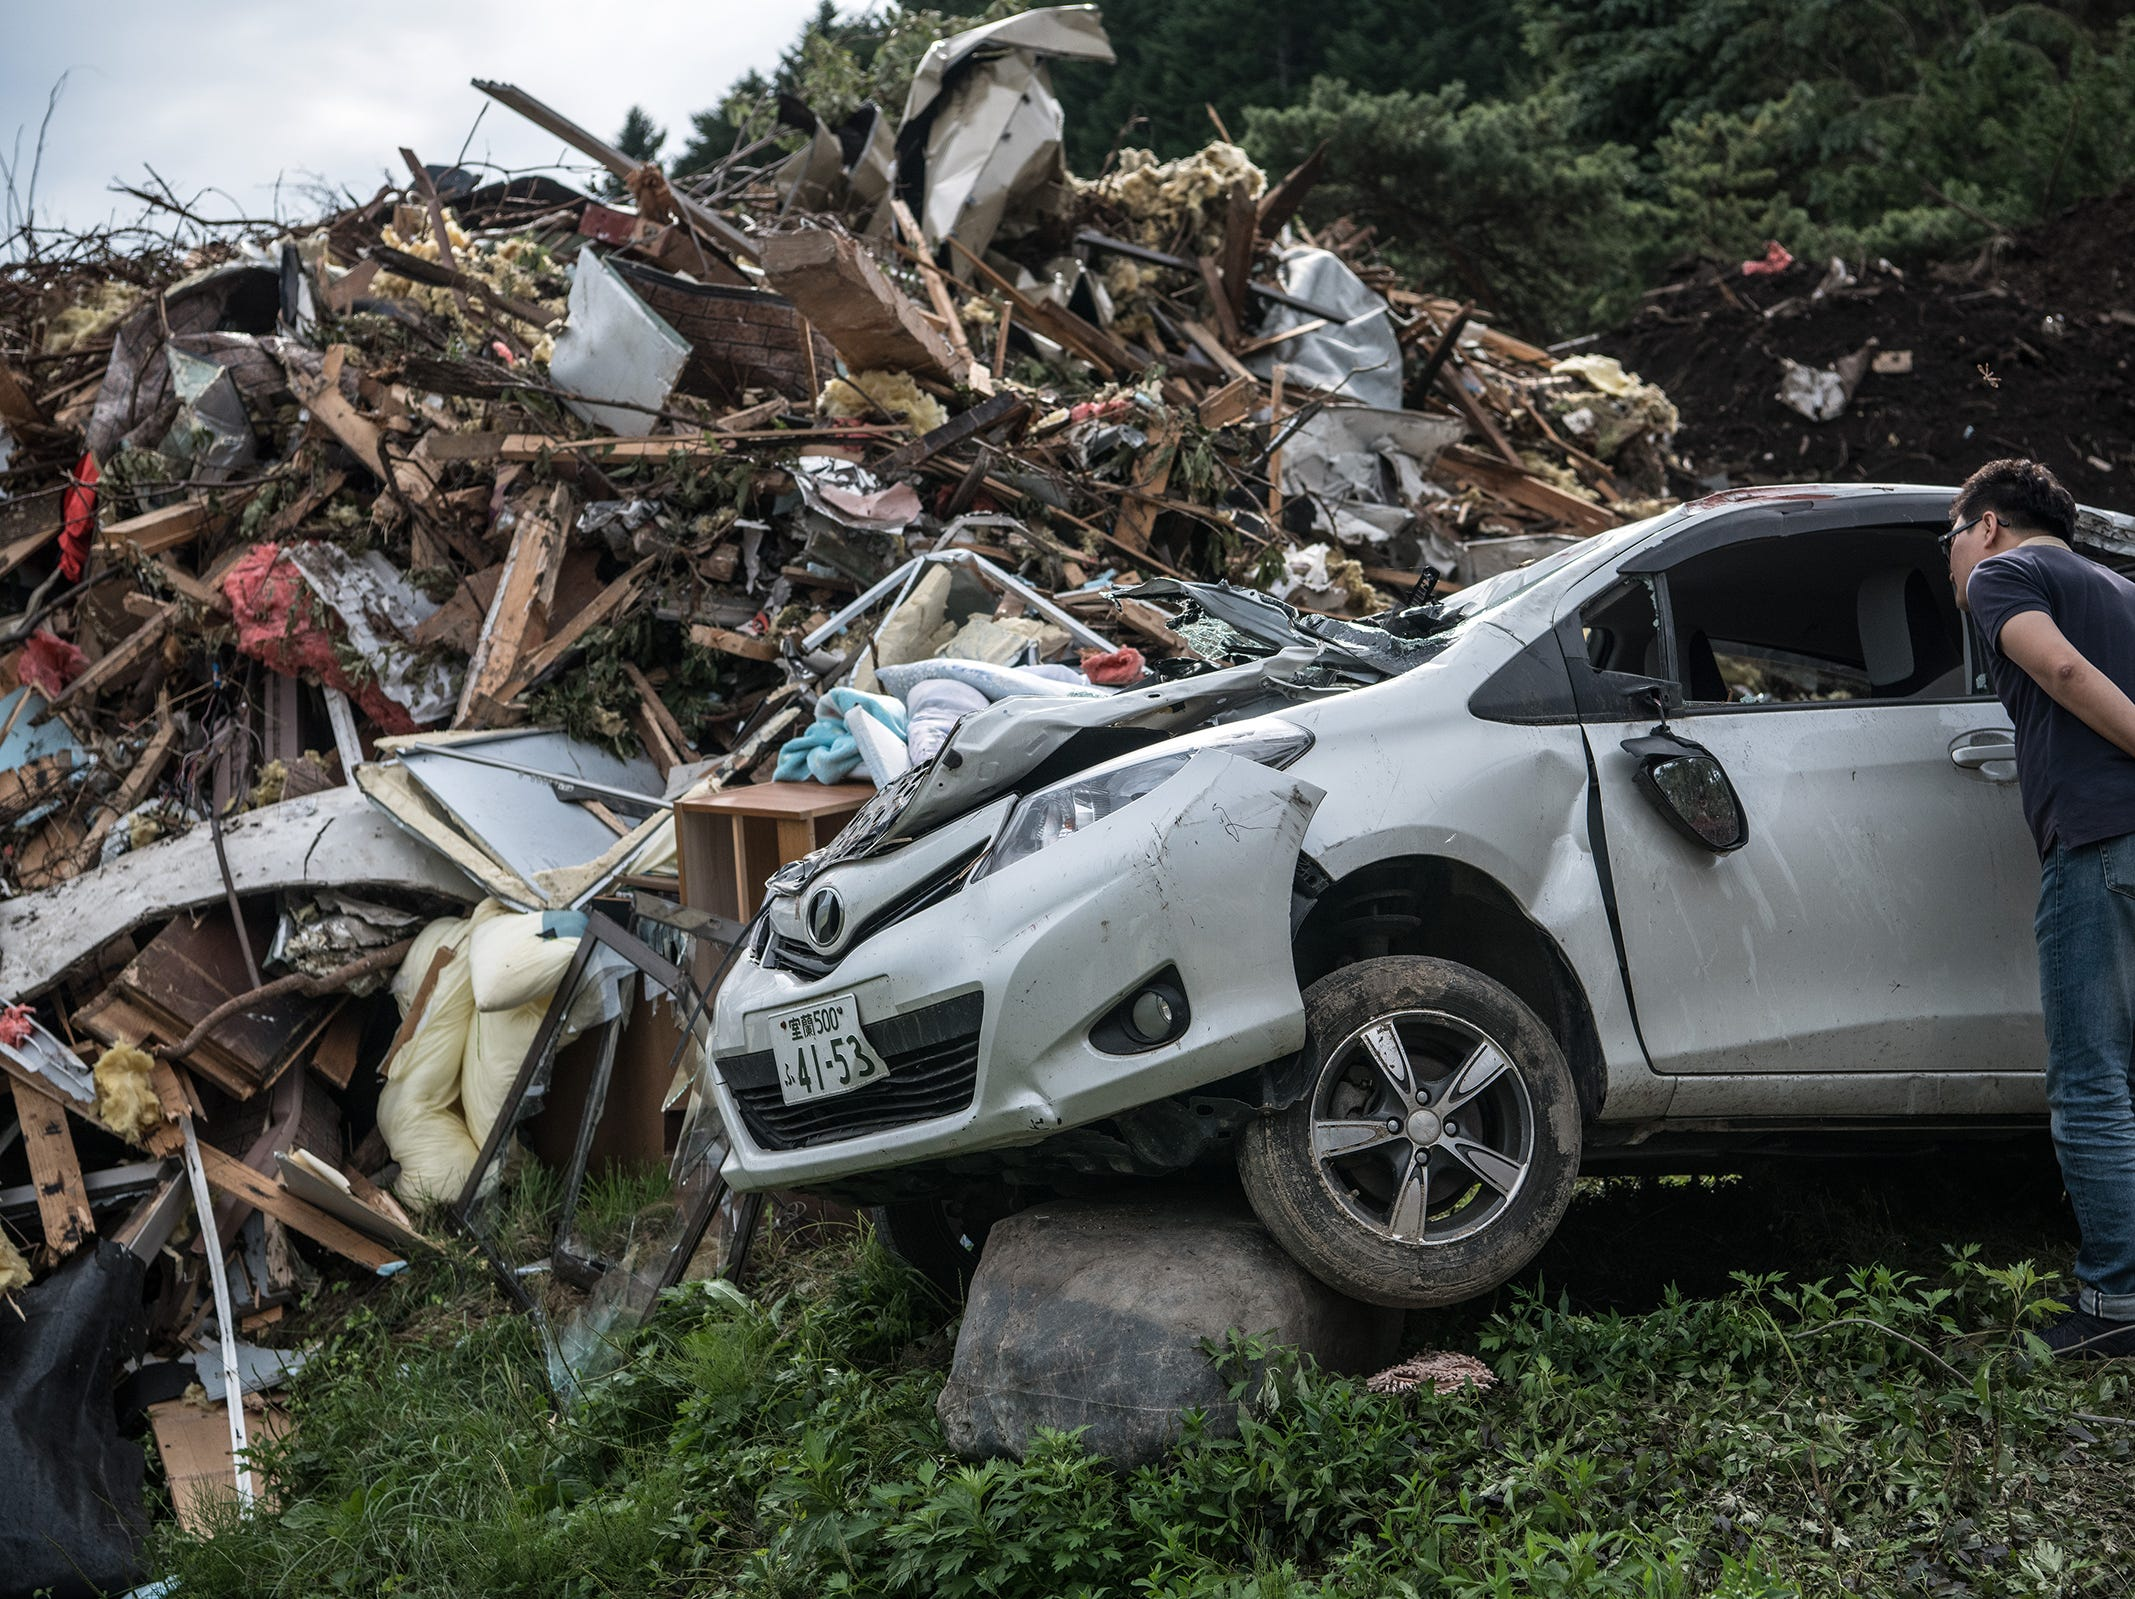 A man peers inside a destroyed car next to the ruins of a house that was struck by a landslide triggered by an earthquake, on Sept. 8, 2018, in Atsuma near Sapporo, Japan. Twenty one people are now confirmed to have been killed with eight still missing and hundreds injured two days after a powerful 6.7-magnitude earthquake struck the northern Japanese island of Hokkaido.